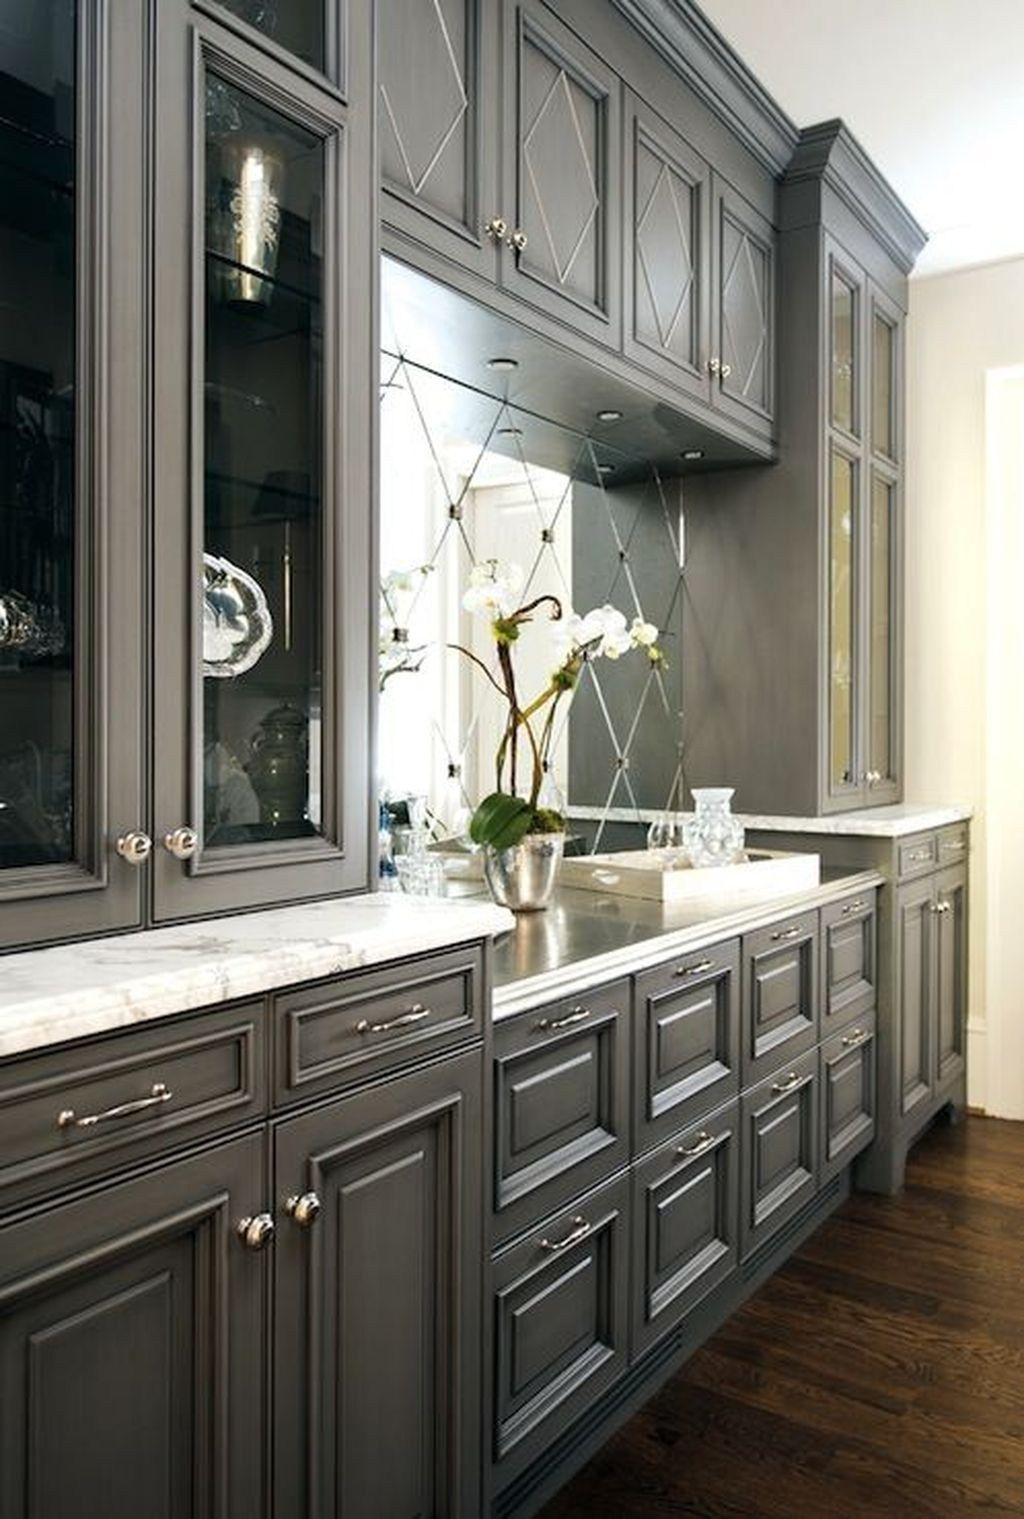 30 popular kitchen color scheme ideas for dark cabinets grey kitchen cabinets farmhouse on kitchen paint colors id=69066